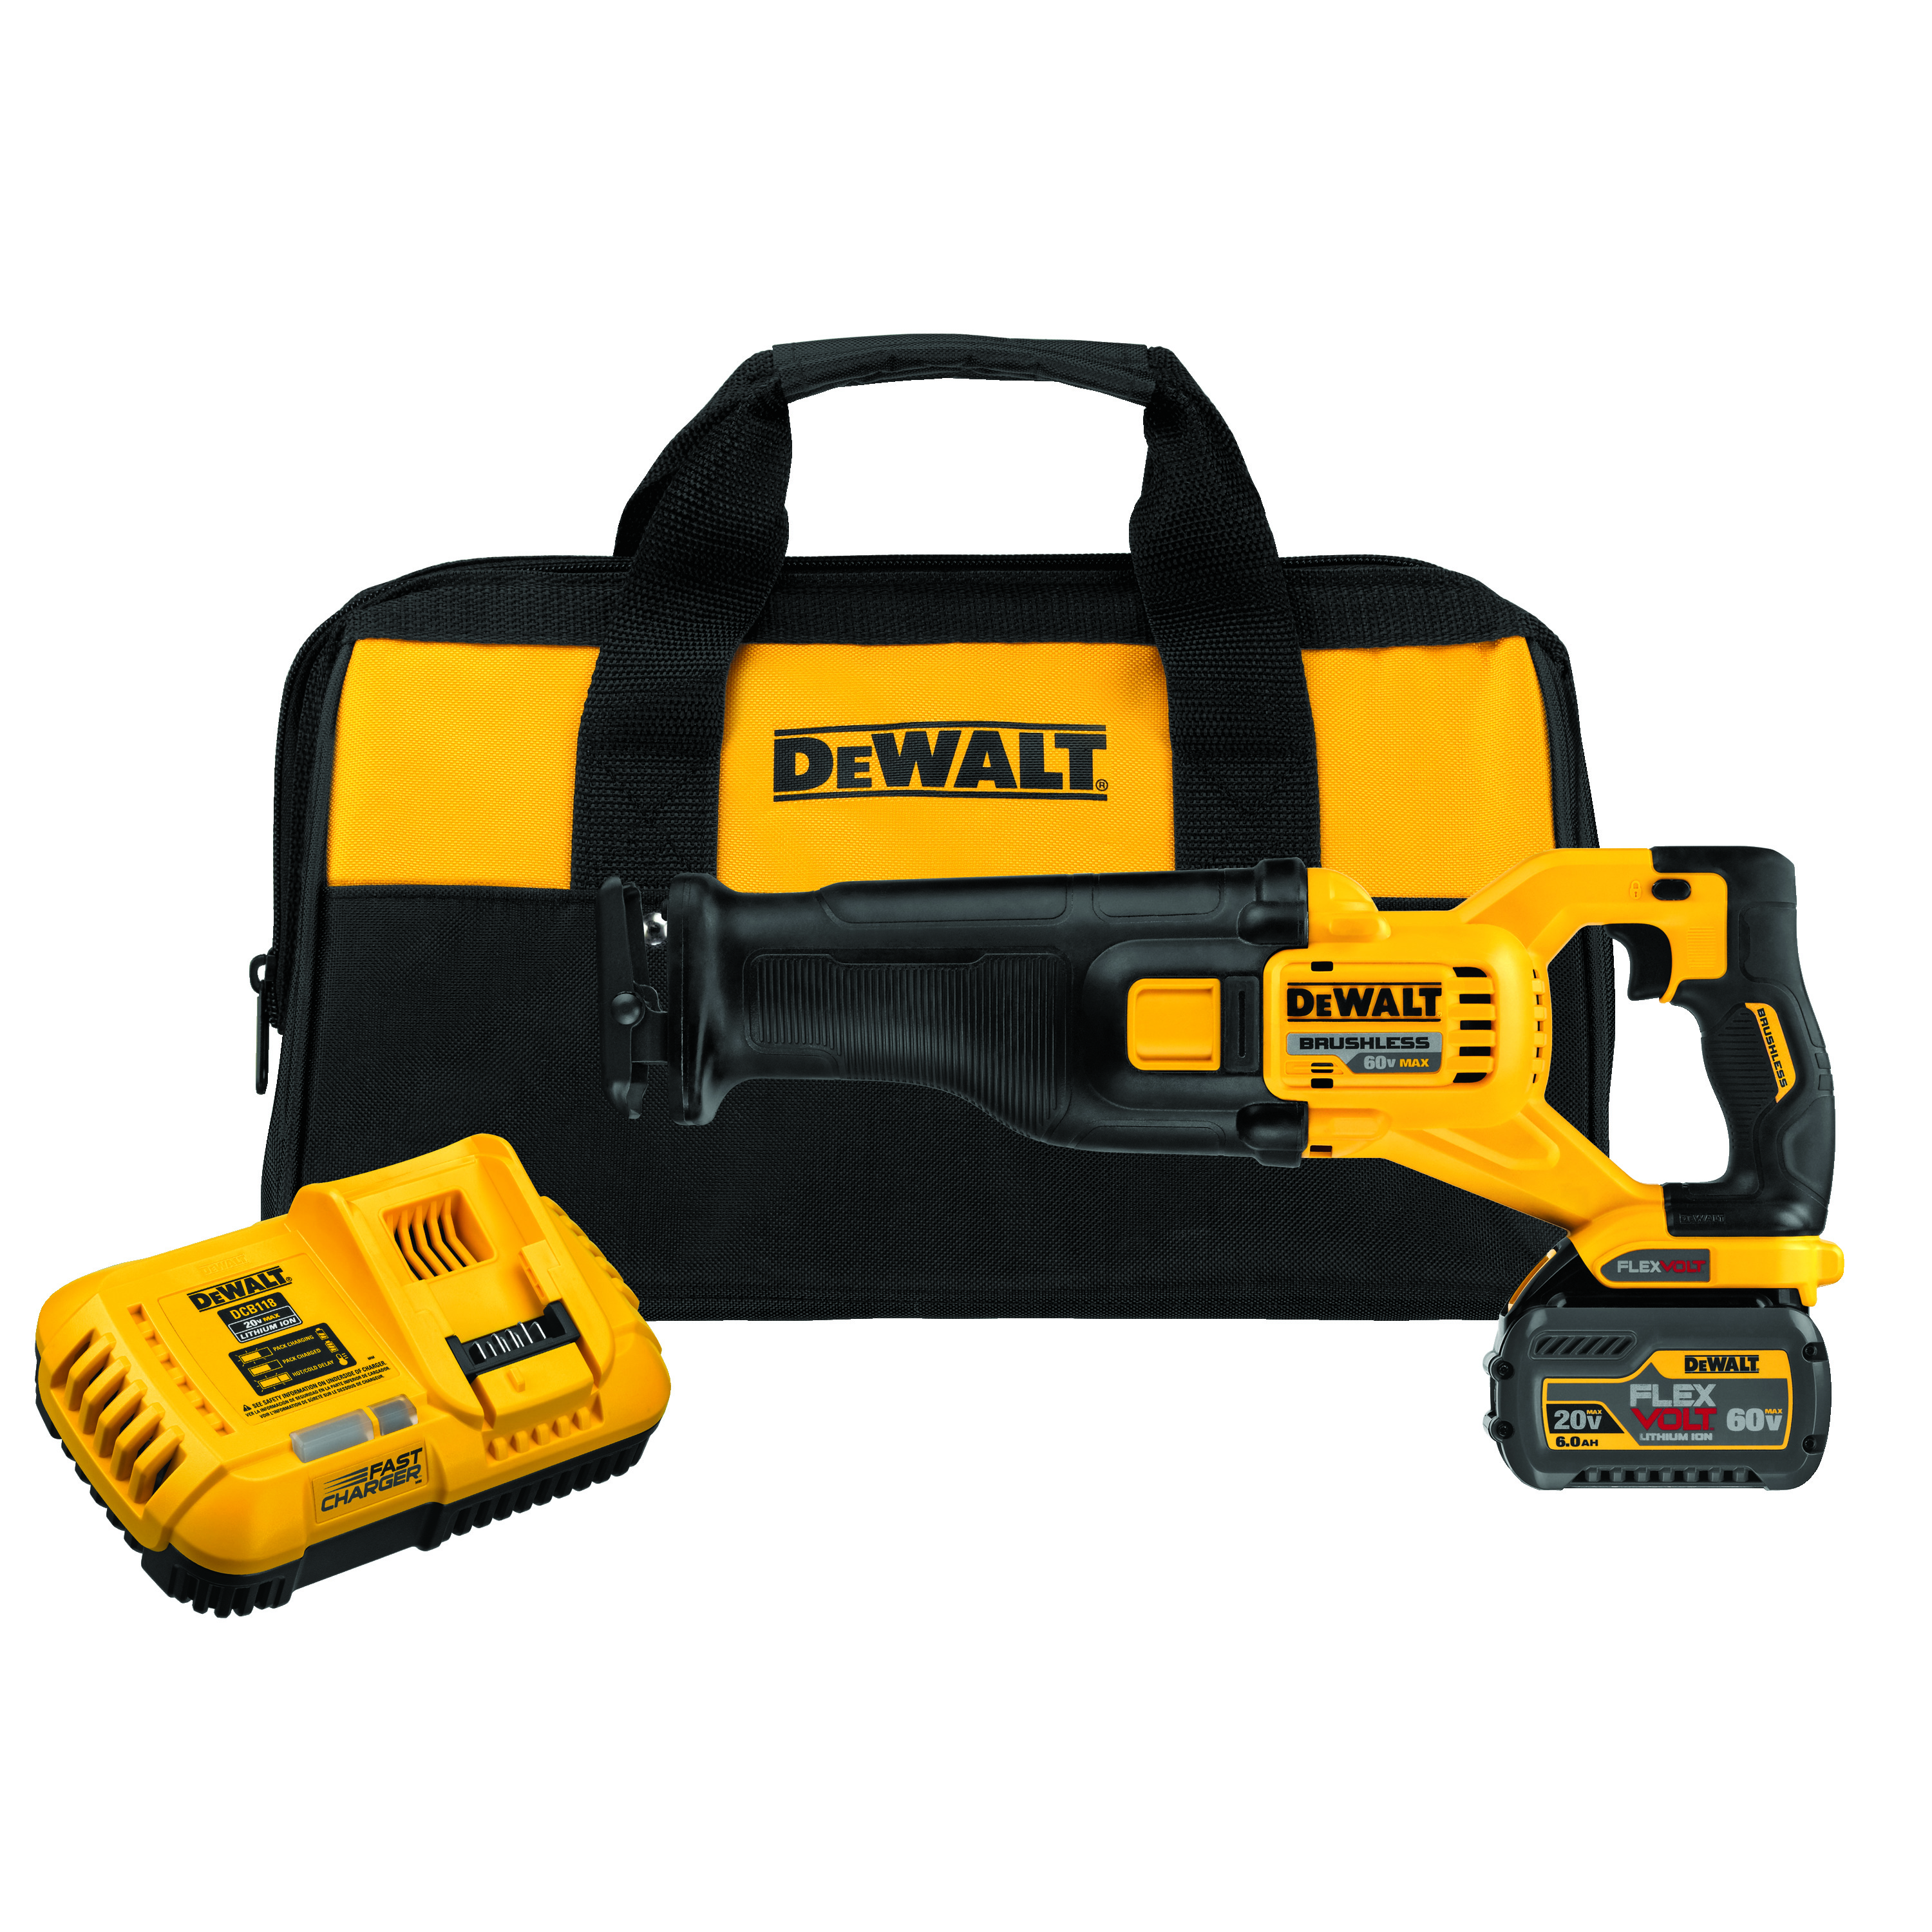 DeWALT® 60V MAX* FLEXVOLT™ DCS388T1 Brushless Cordless Reciprocating Saw With (1) Battery Kit, 1-1/8 in L Stroke, 0 to 3000 spm, Straight Cut, 60 V, 17.725 in OAL